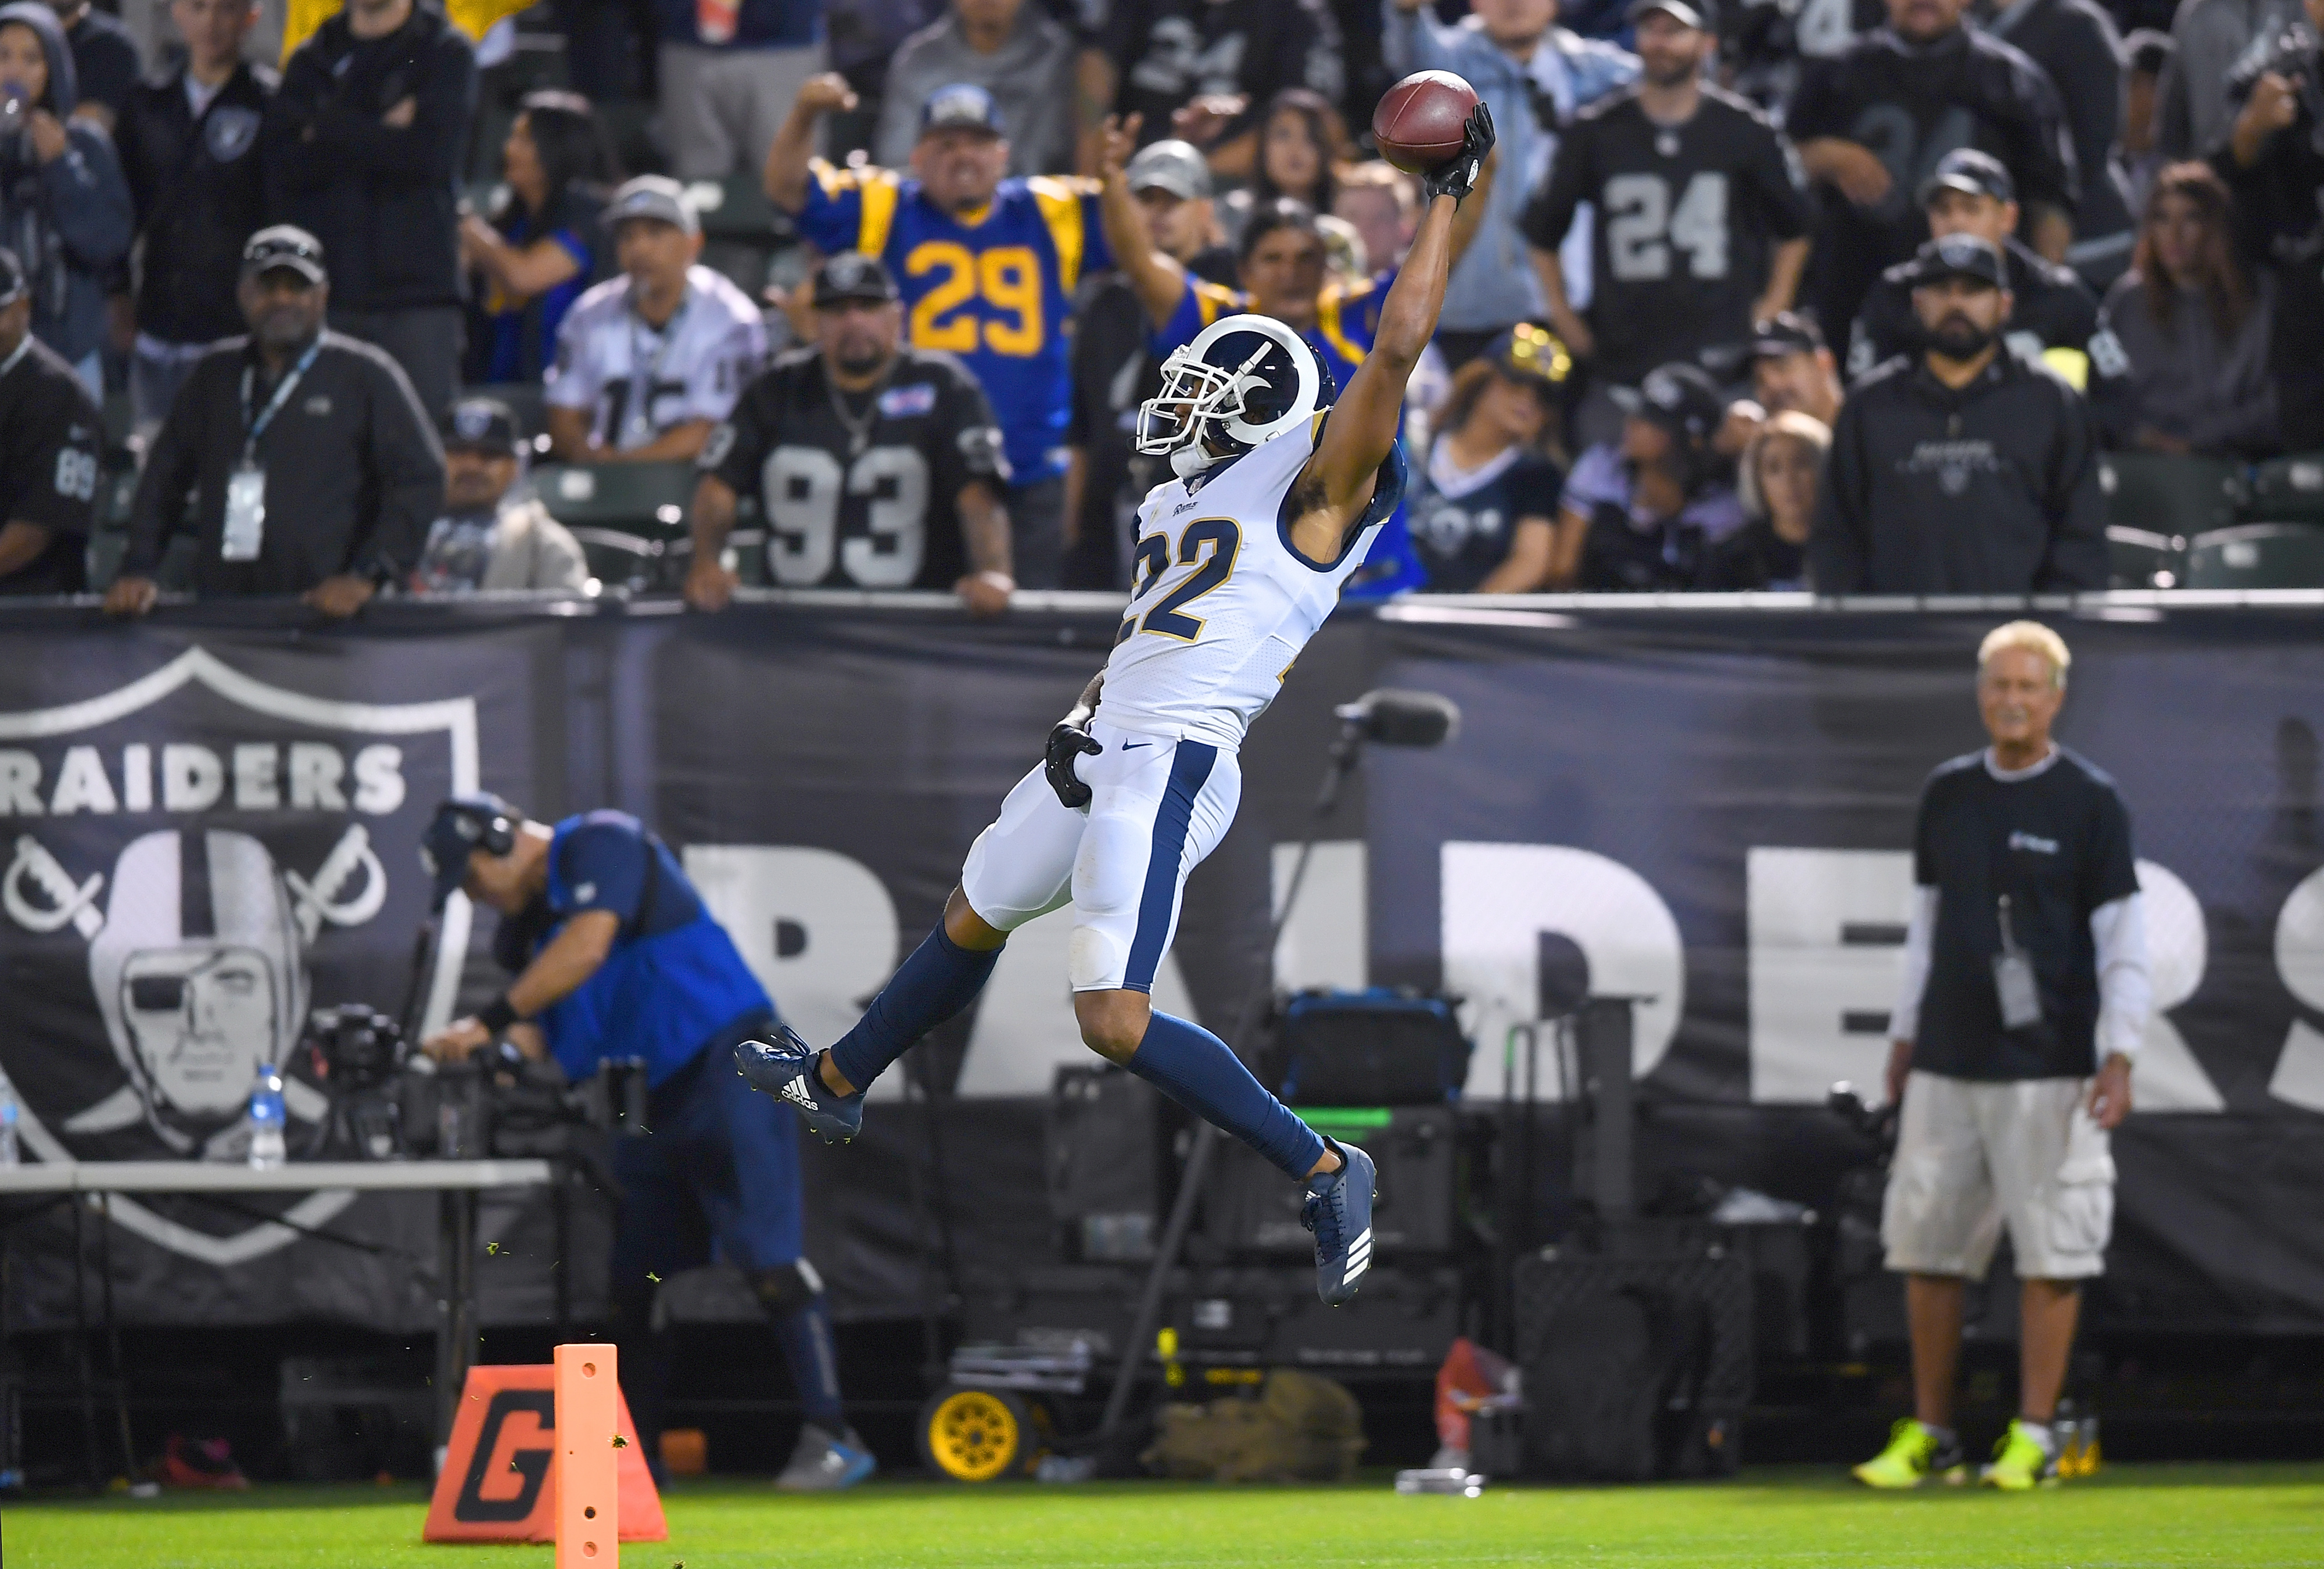 Los Angeles Rams CB Marcus Petersdives into the endzone to cap off a pick six in Week 1 against the Oakland Raiders, Sep. 10, 2018.